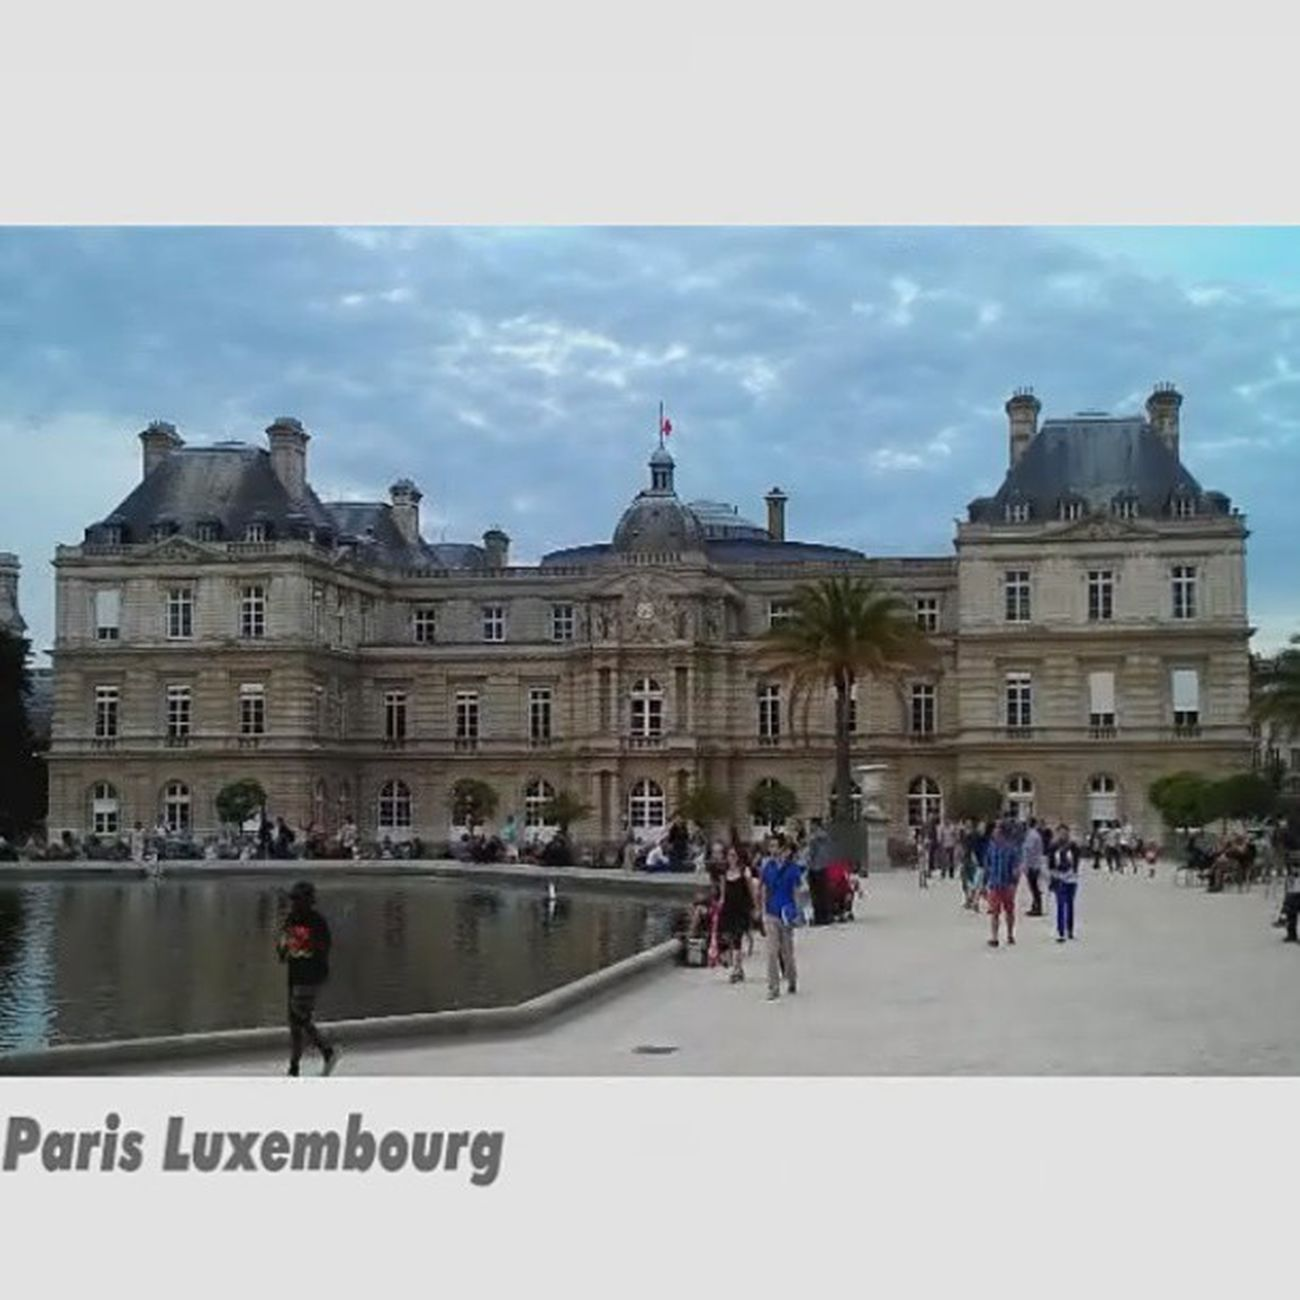 #Paris #jardinduluxembourg Perfectvideo Videooftheday Paris Myfirstvideo Videoclip Videogramoftheday Igersfrance Insta_pick_video Igersparis Gi_video Wec_ig Hubvideo Videoinstagram Global_views_videoshot Instagramvideo Jj_video Videogram Ministory Igvideo Clubsocial_video Instavideo Instagoodvideo Igersfrancevideo Jardinduluxembourg Worldvideos Insta_globalvideo Tribegram_video